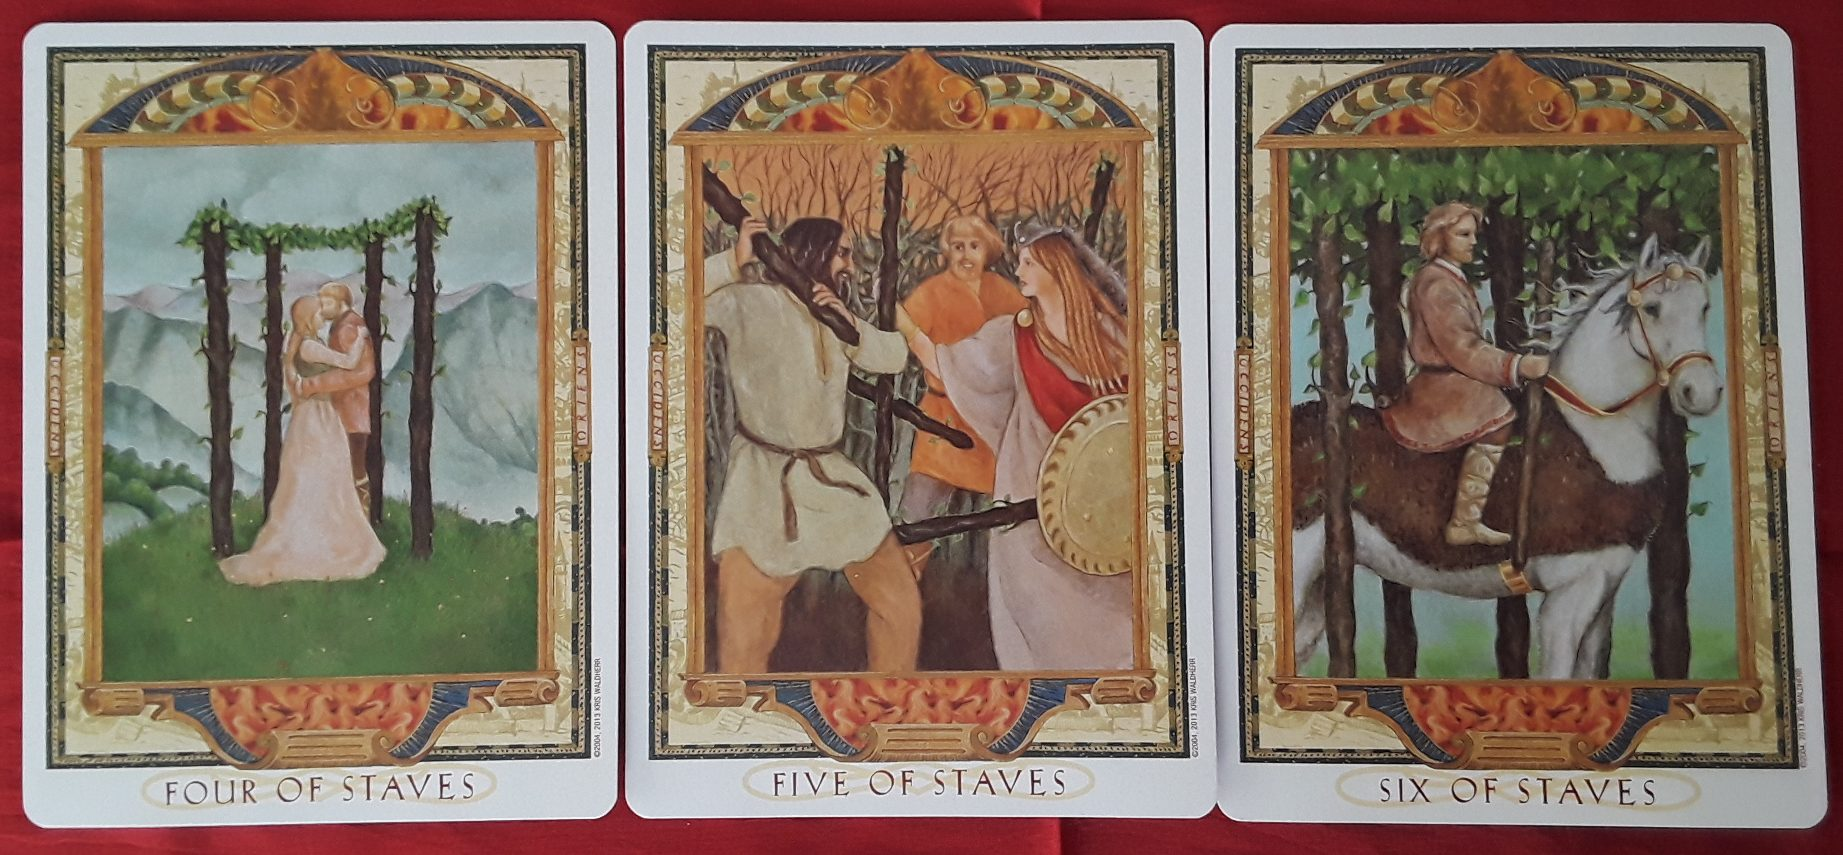 The Four, Five, and Six from the tarot Suit of Wands in love readings.